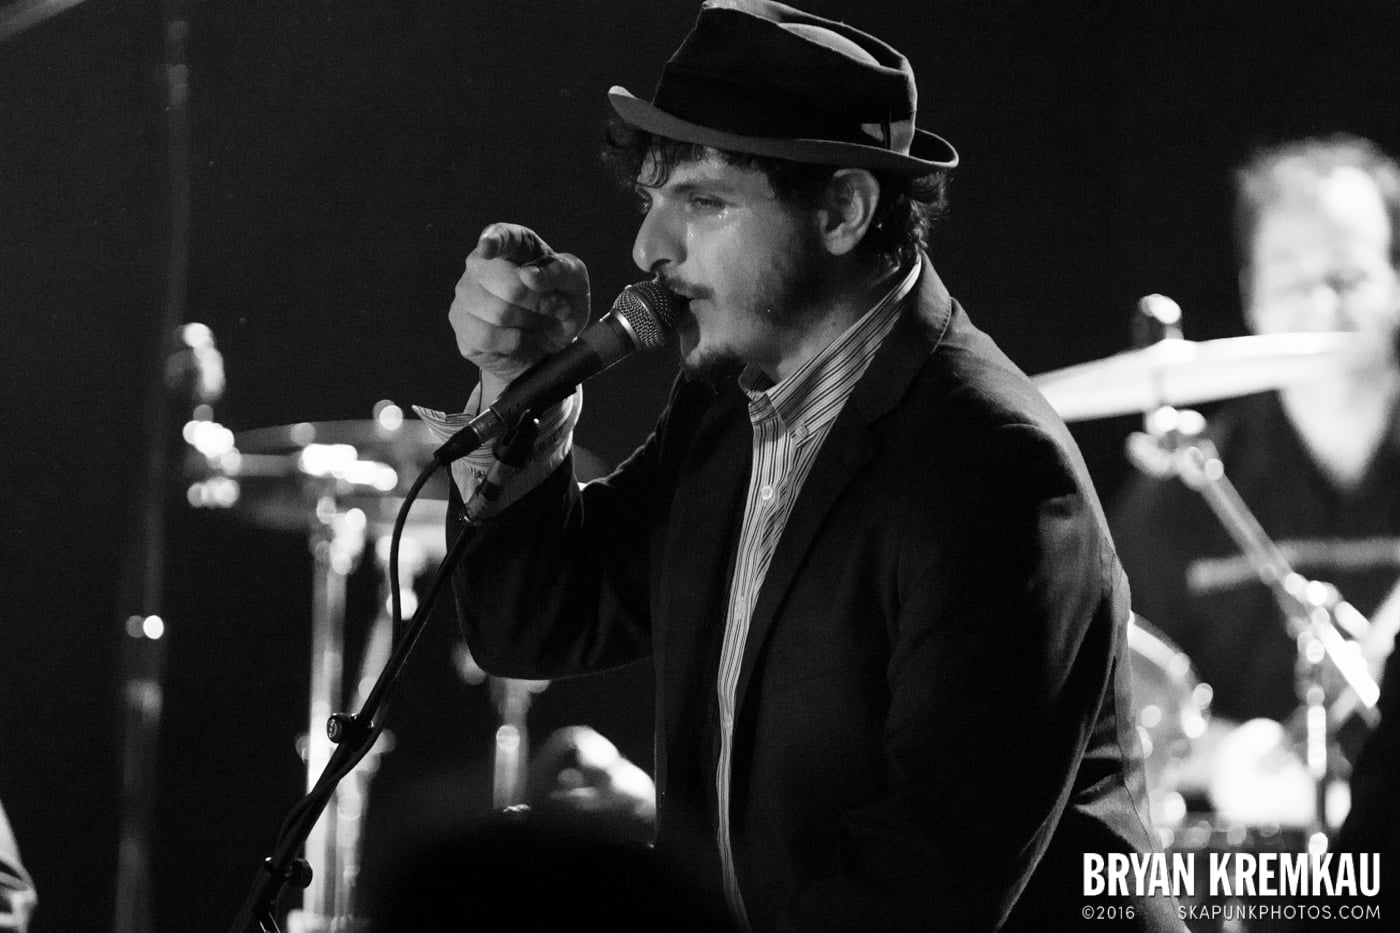 The Slackers @ Apple Stomp: Day 2, Irving Plaza, NYC - June 1st 2013 - Bryan Kremkau (1)